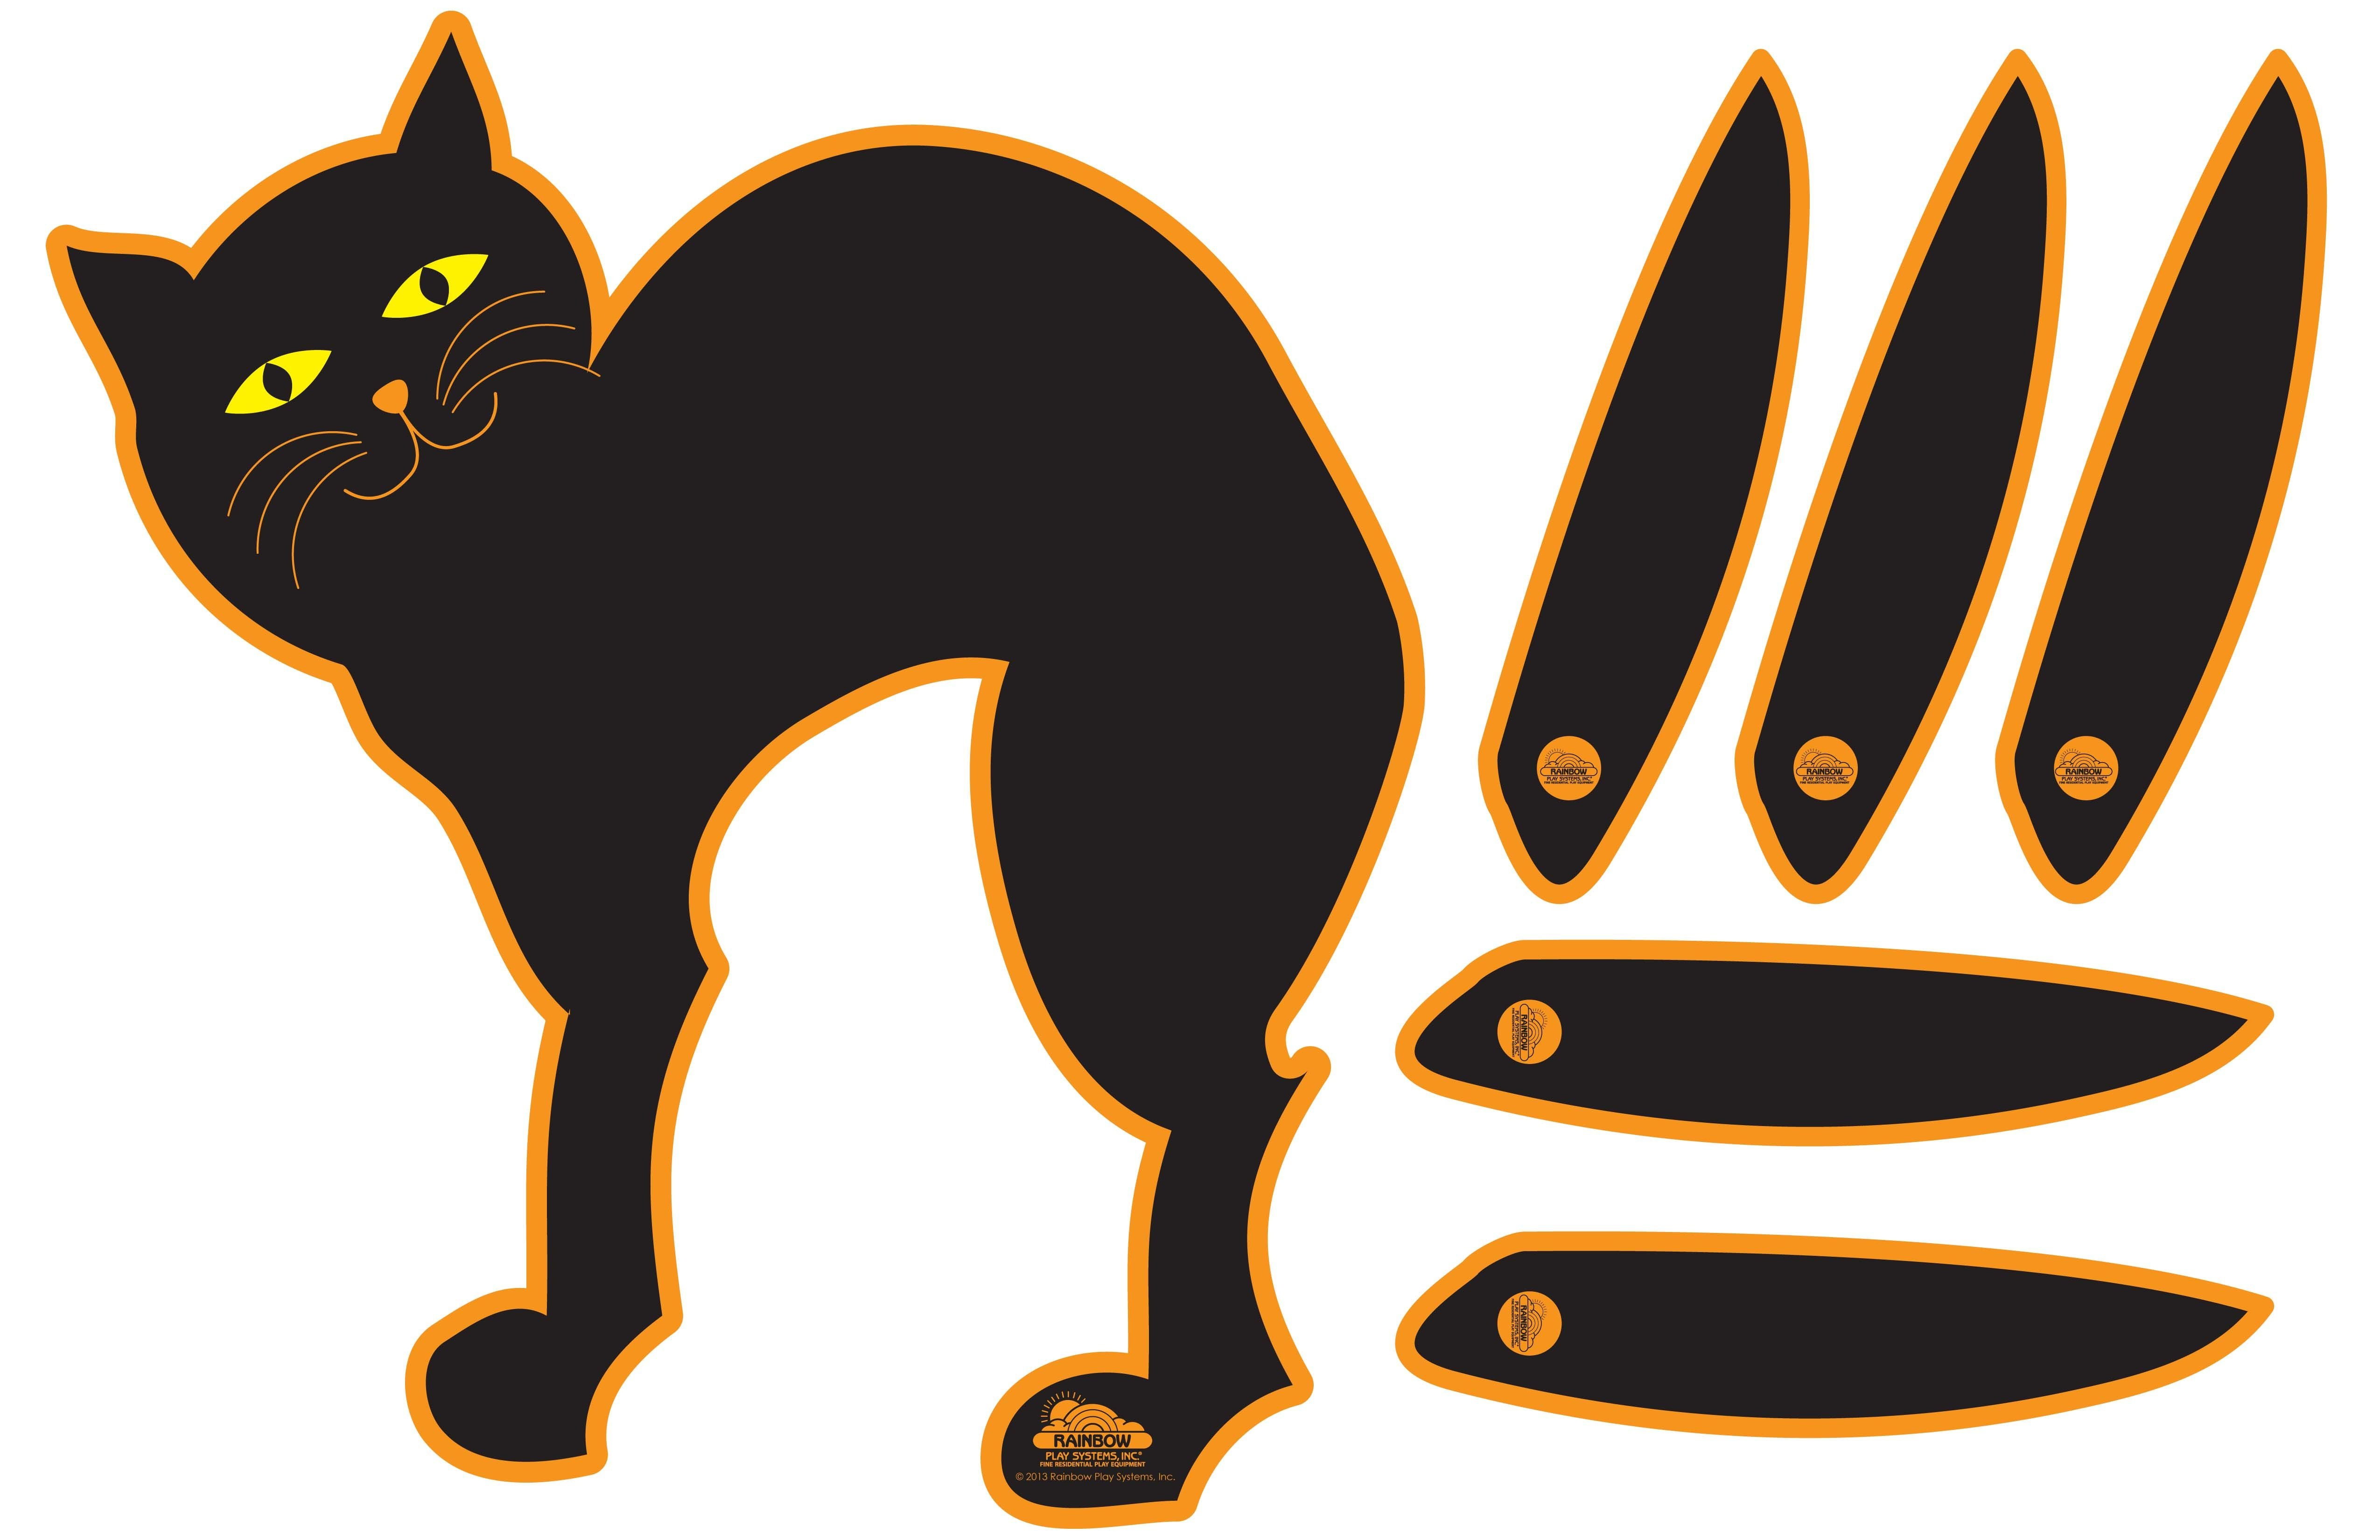 Pin The Tail On The Cat | Kids Holiday - Halloween Activities - Free Printable Pin The Tail On The Cat